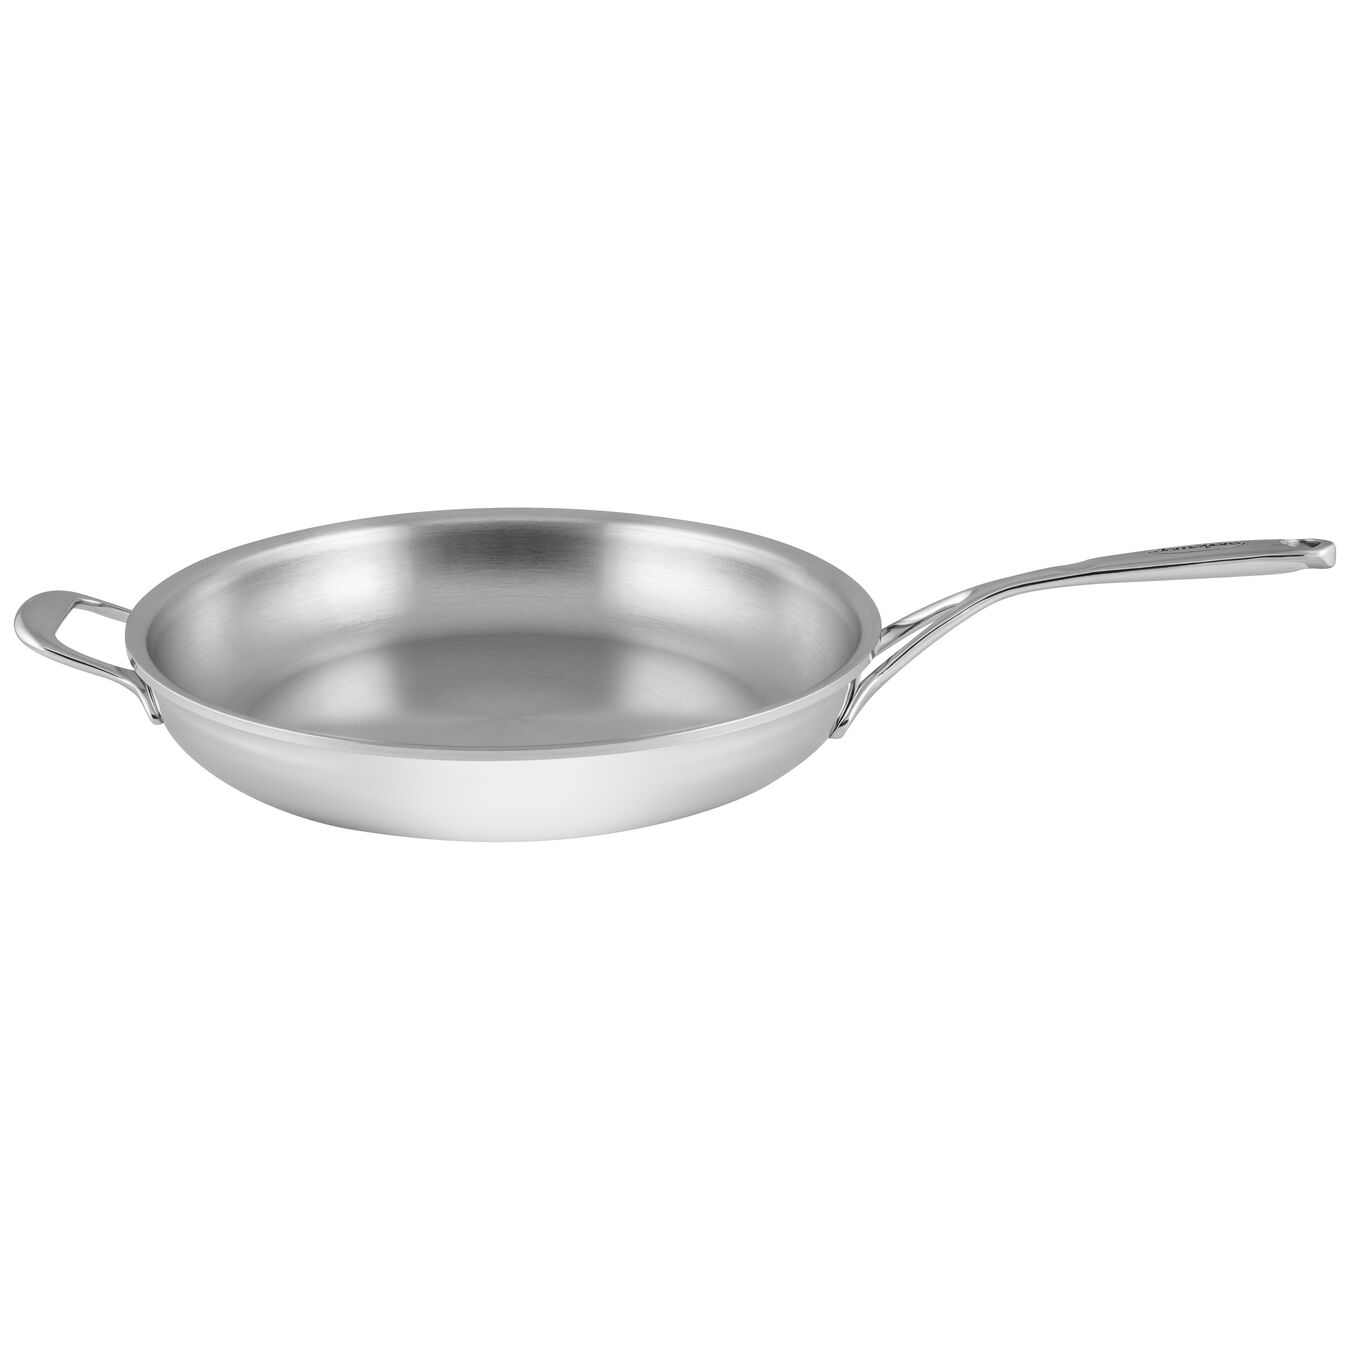 12.6-inch Stainless Steel Fry Pan with Helper Handle,,large 1